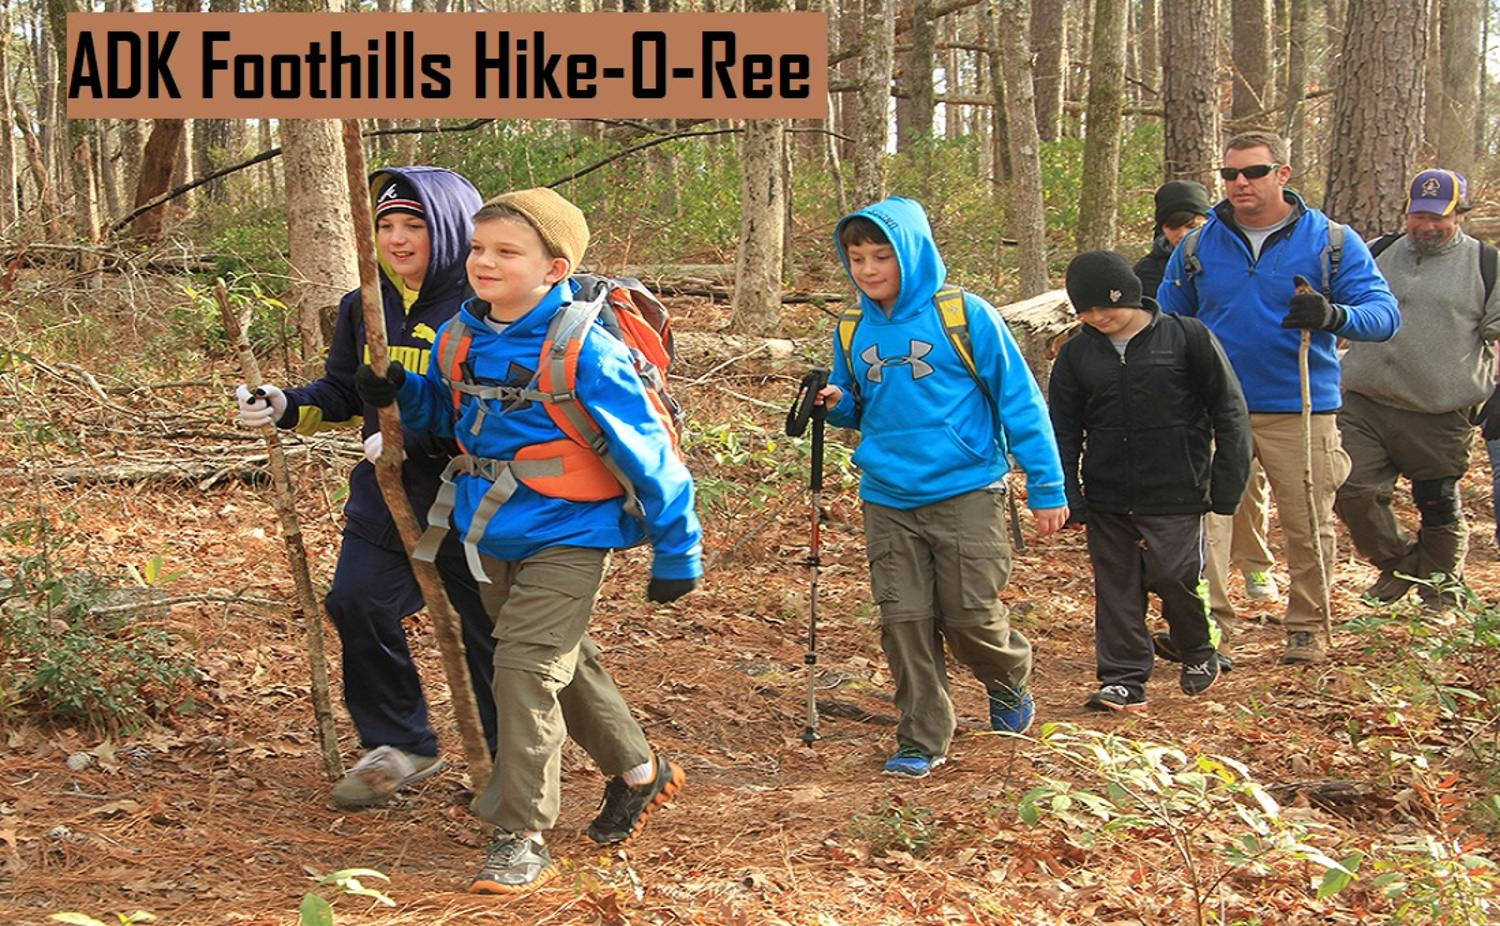 Cub Scout ADK Hike-O-Ree Oct 3rd